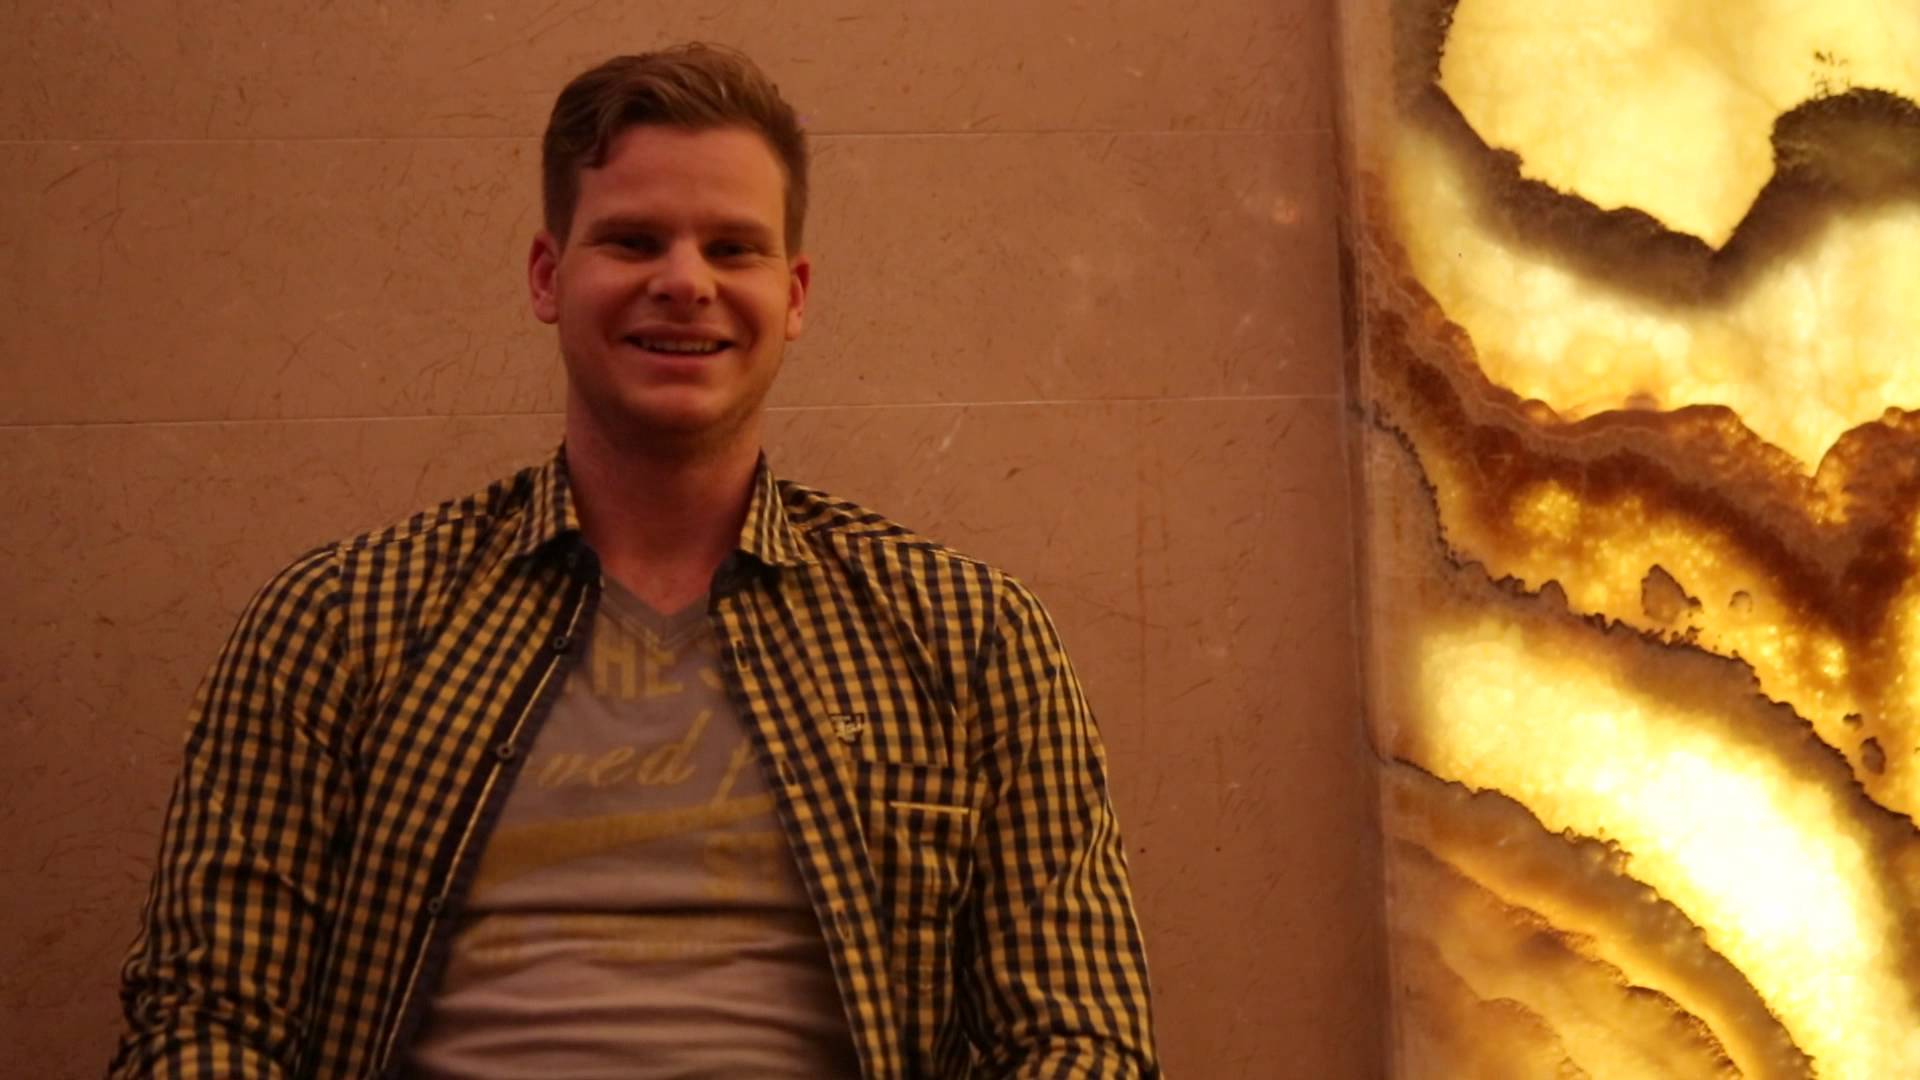 Smart Steven Smith HD Wallpapers And New Images 1920x1080